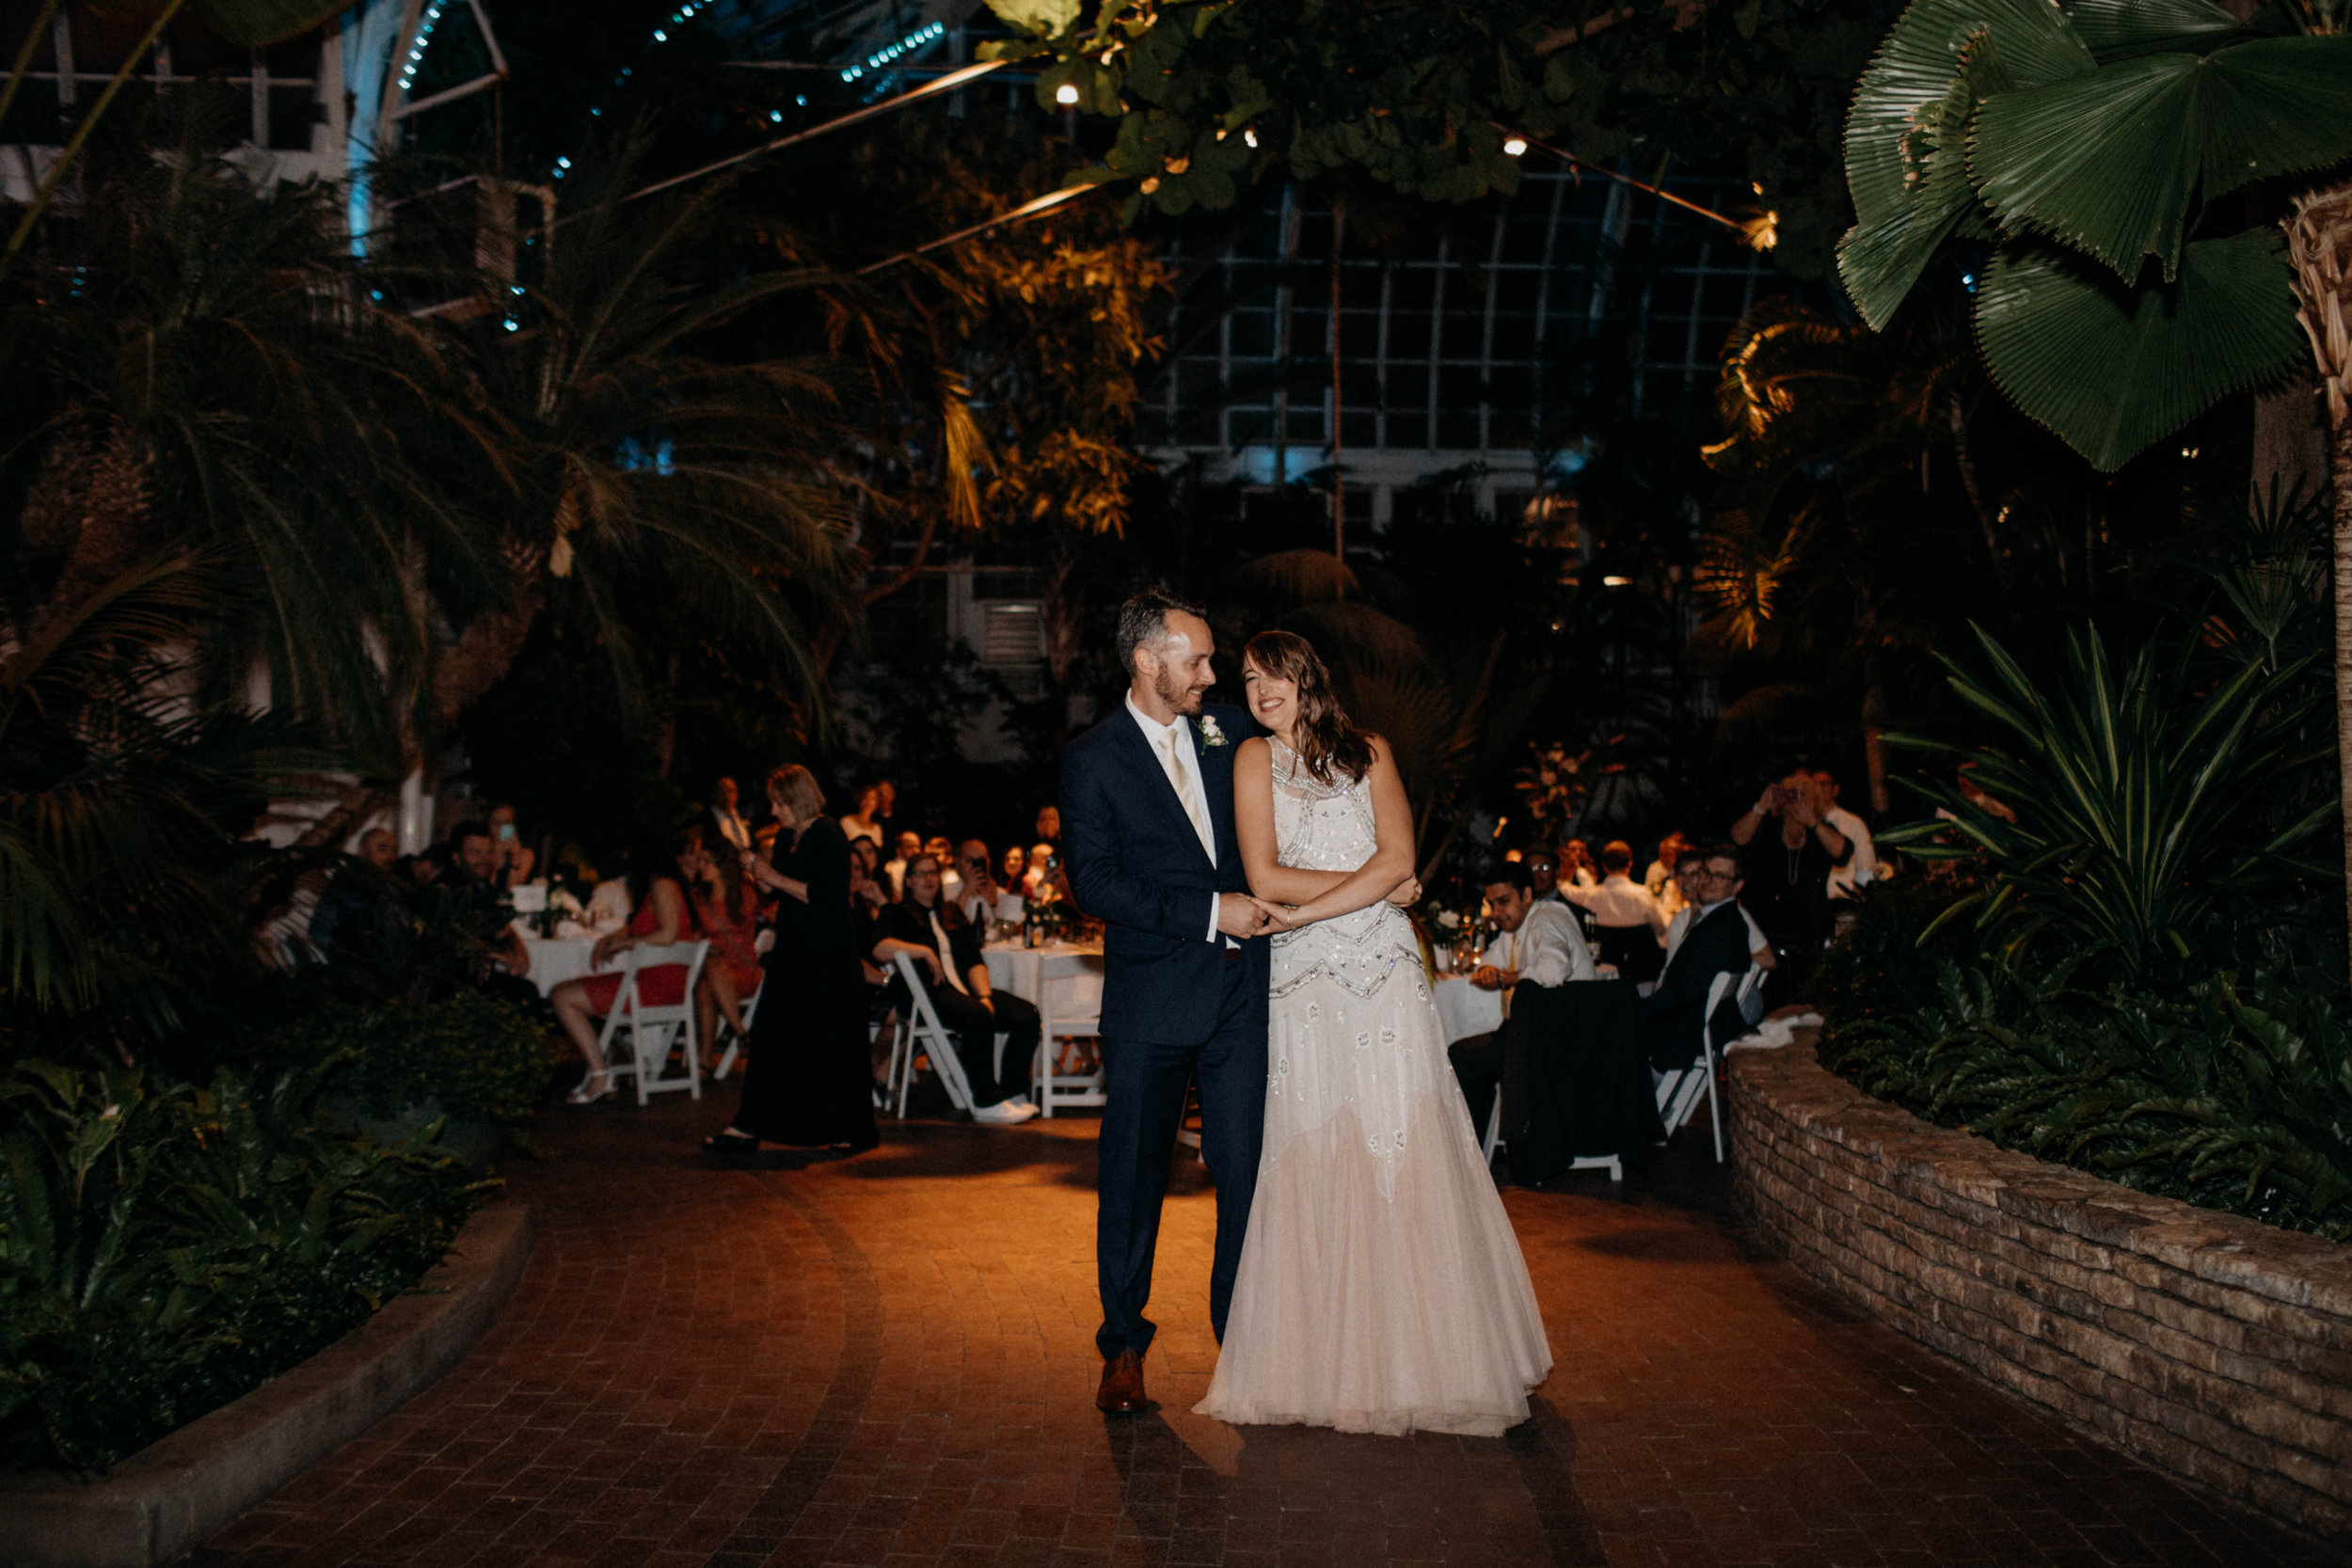 franklin park conservatory wedding columbus ohio wedding photographer grace e jones photography321.jpg